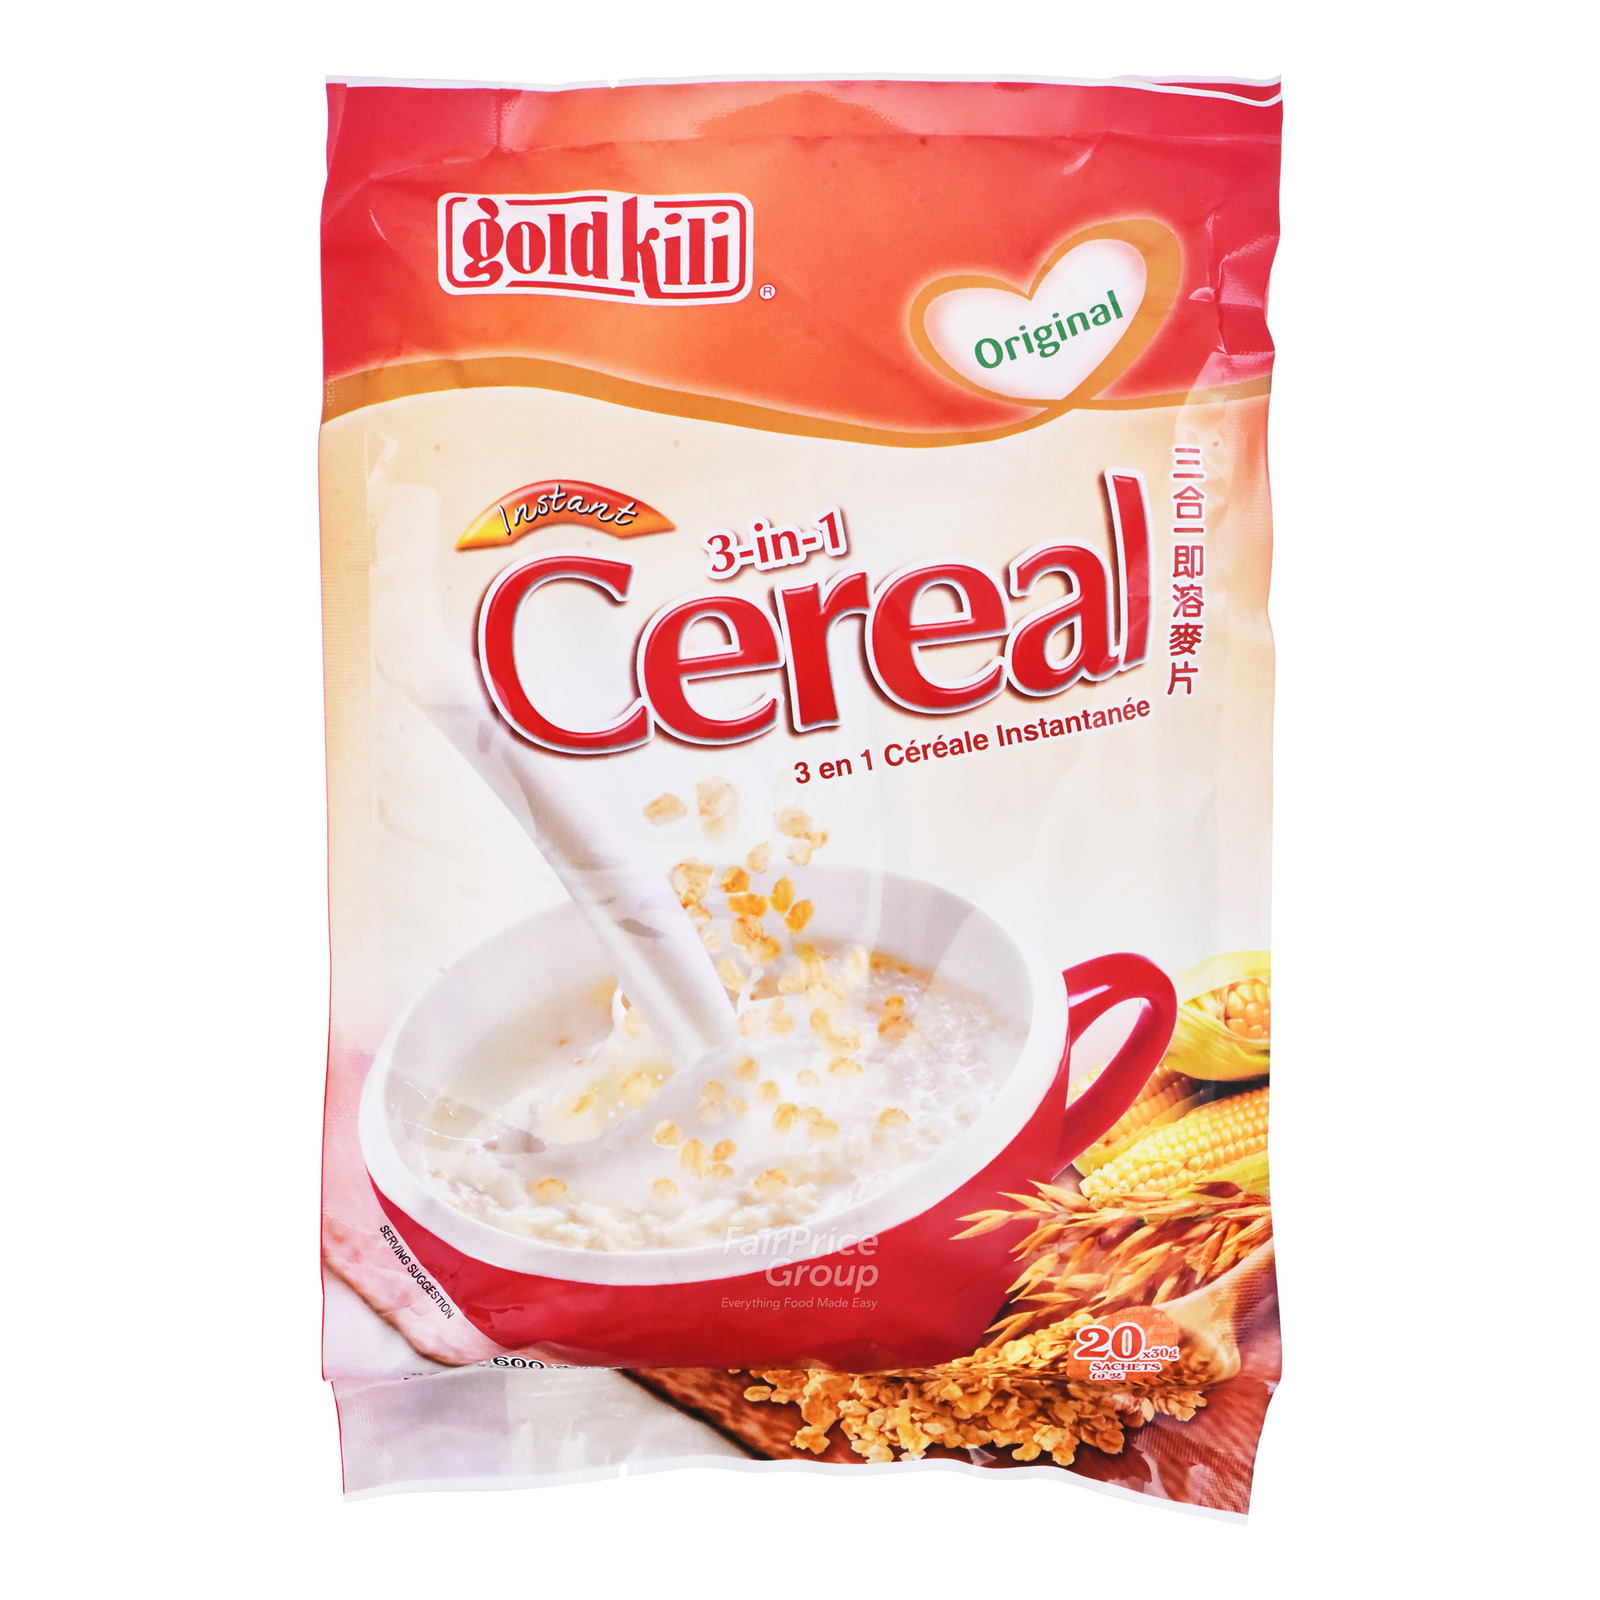 Gold Kili Instant Cereal - Original